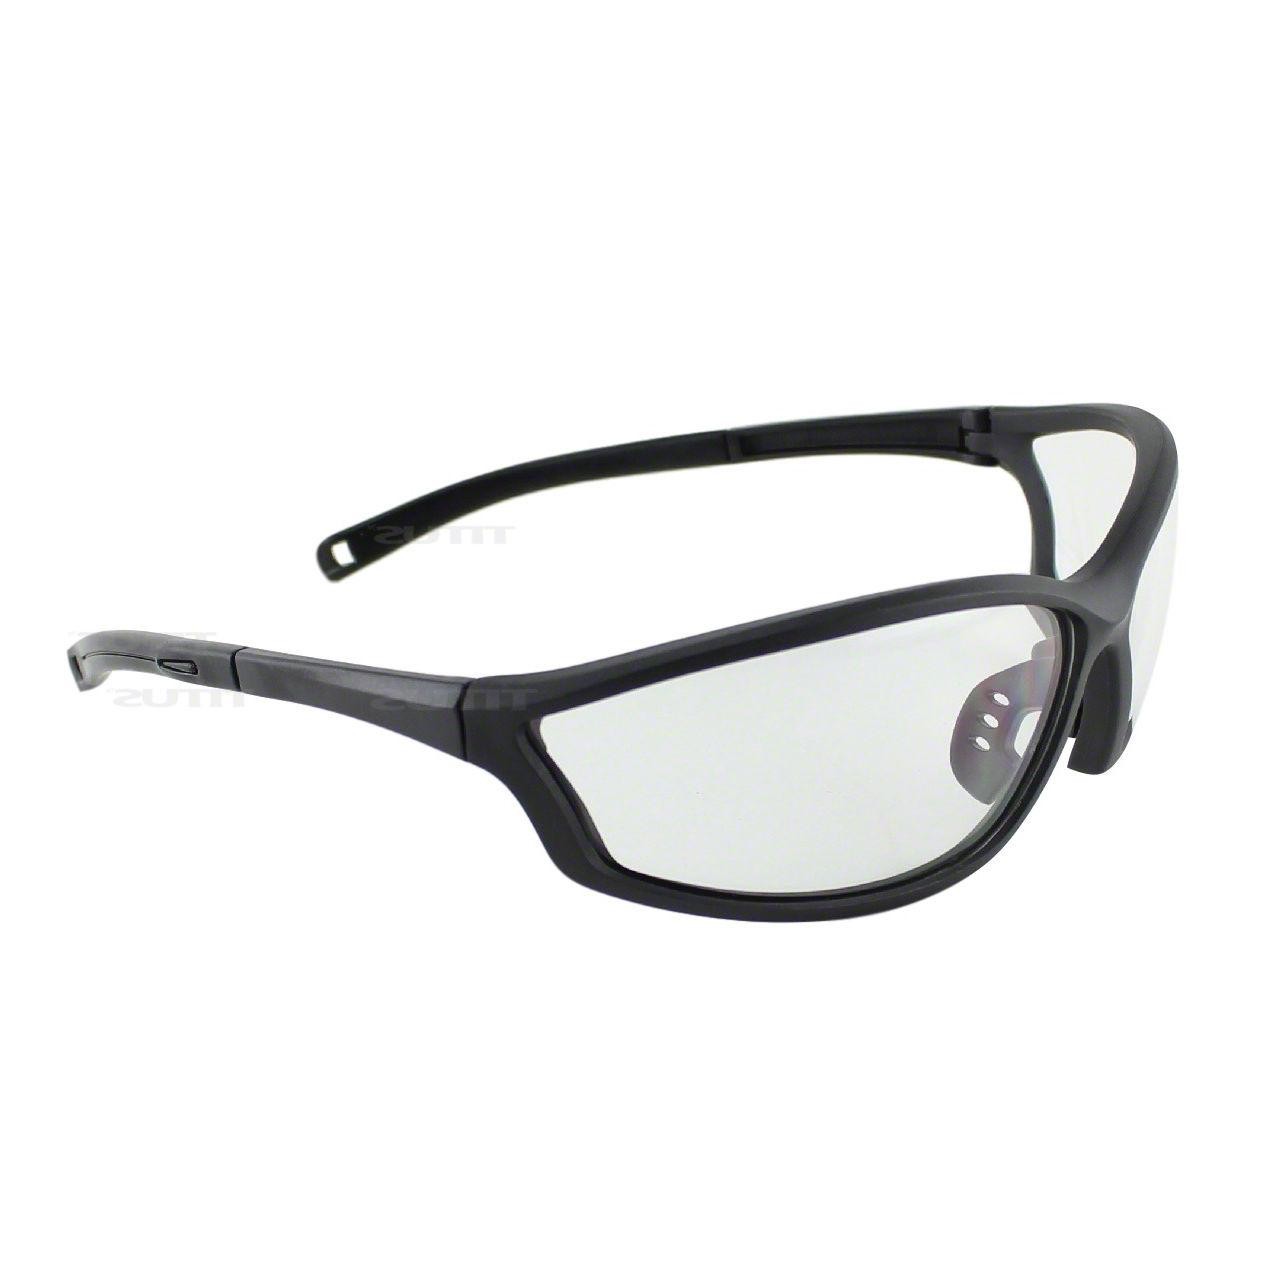 4b3c3dc8163e Titus Safety Glasses Shooting Eyewear Motorcycle Protection